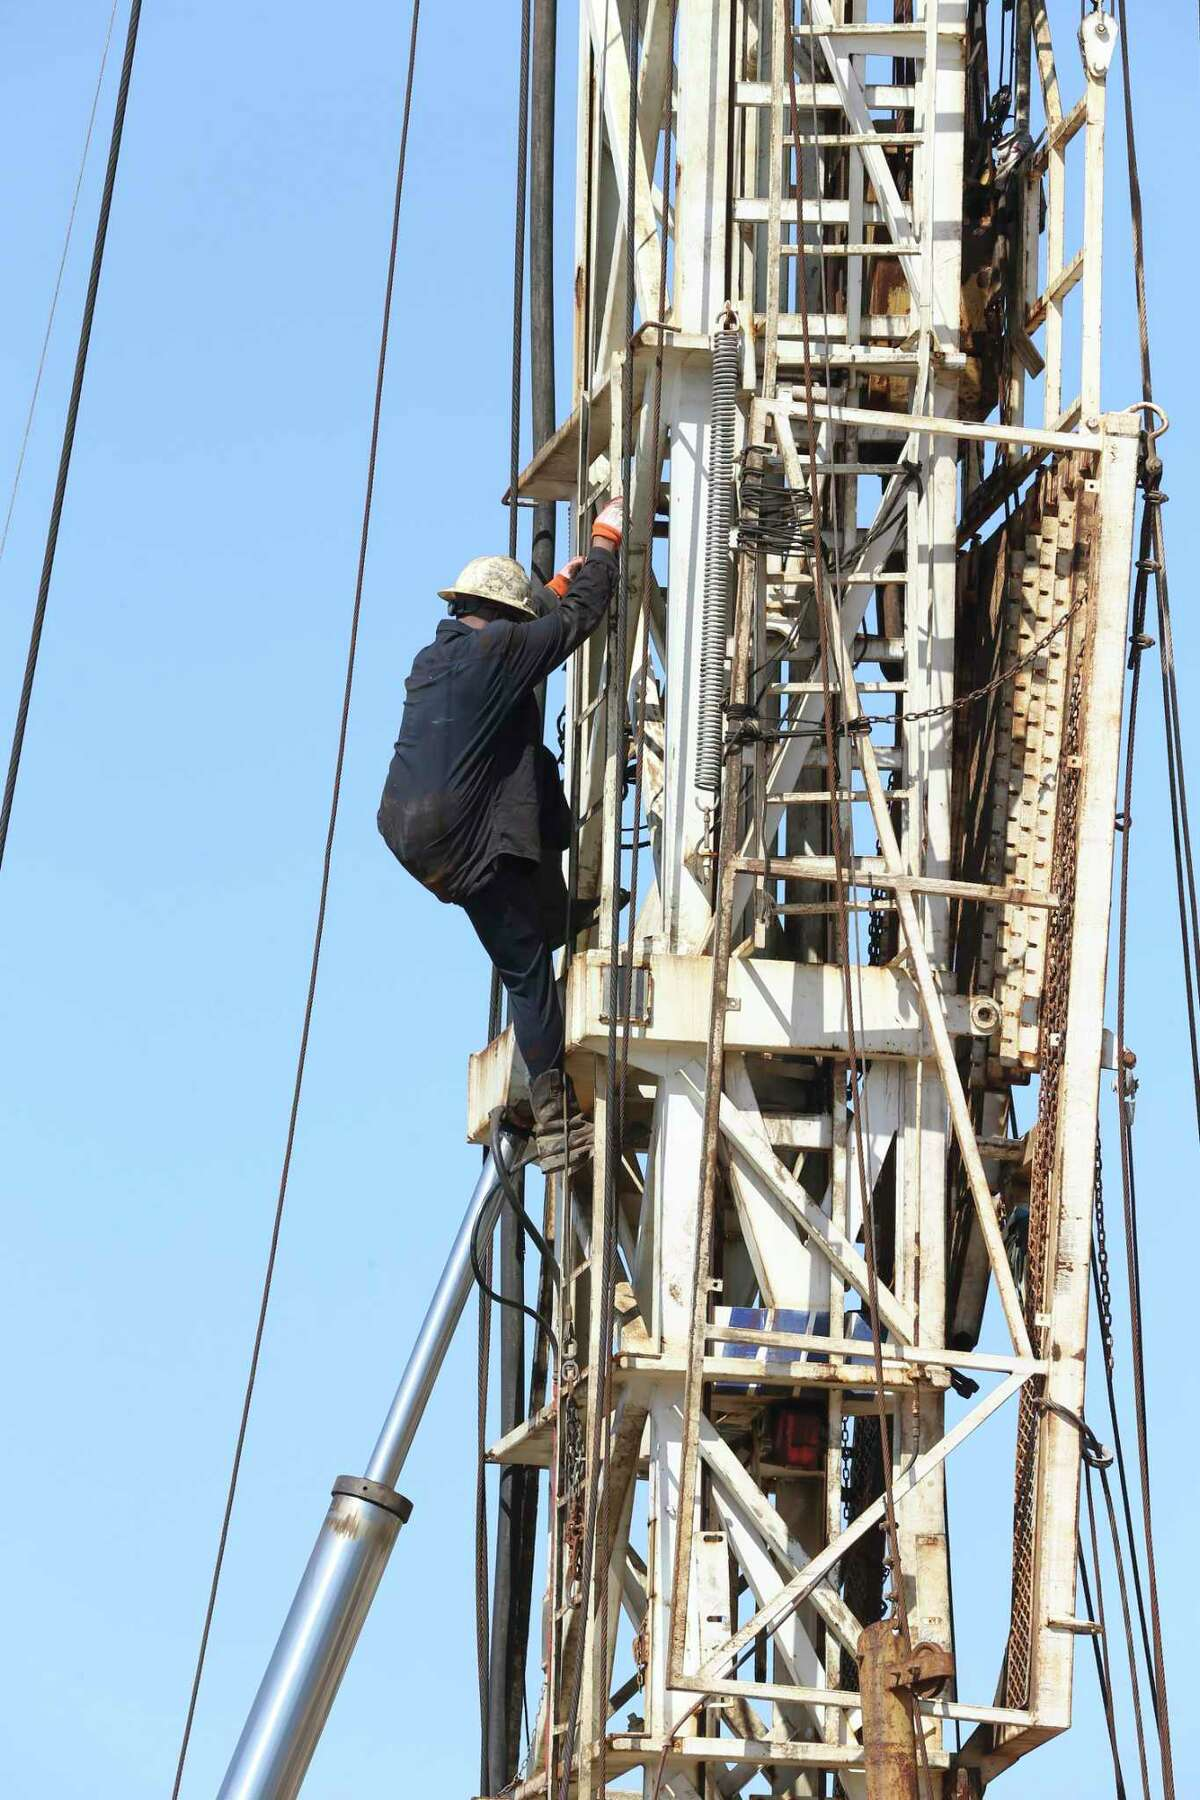 A drilling crew sets up a rig over the Chalk Talk #2 well south of Gonzales, Texas, Friday, April 24, 2020. Millennium Exploration drilled Chalk Talk #2 to a depth of 8,600 feet and went 4,000 feet horizontally in 40 days. They expect 800 barrels a day from the well when completed this Sunday.